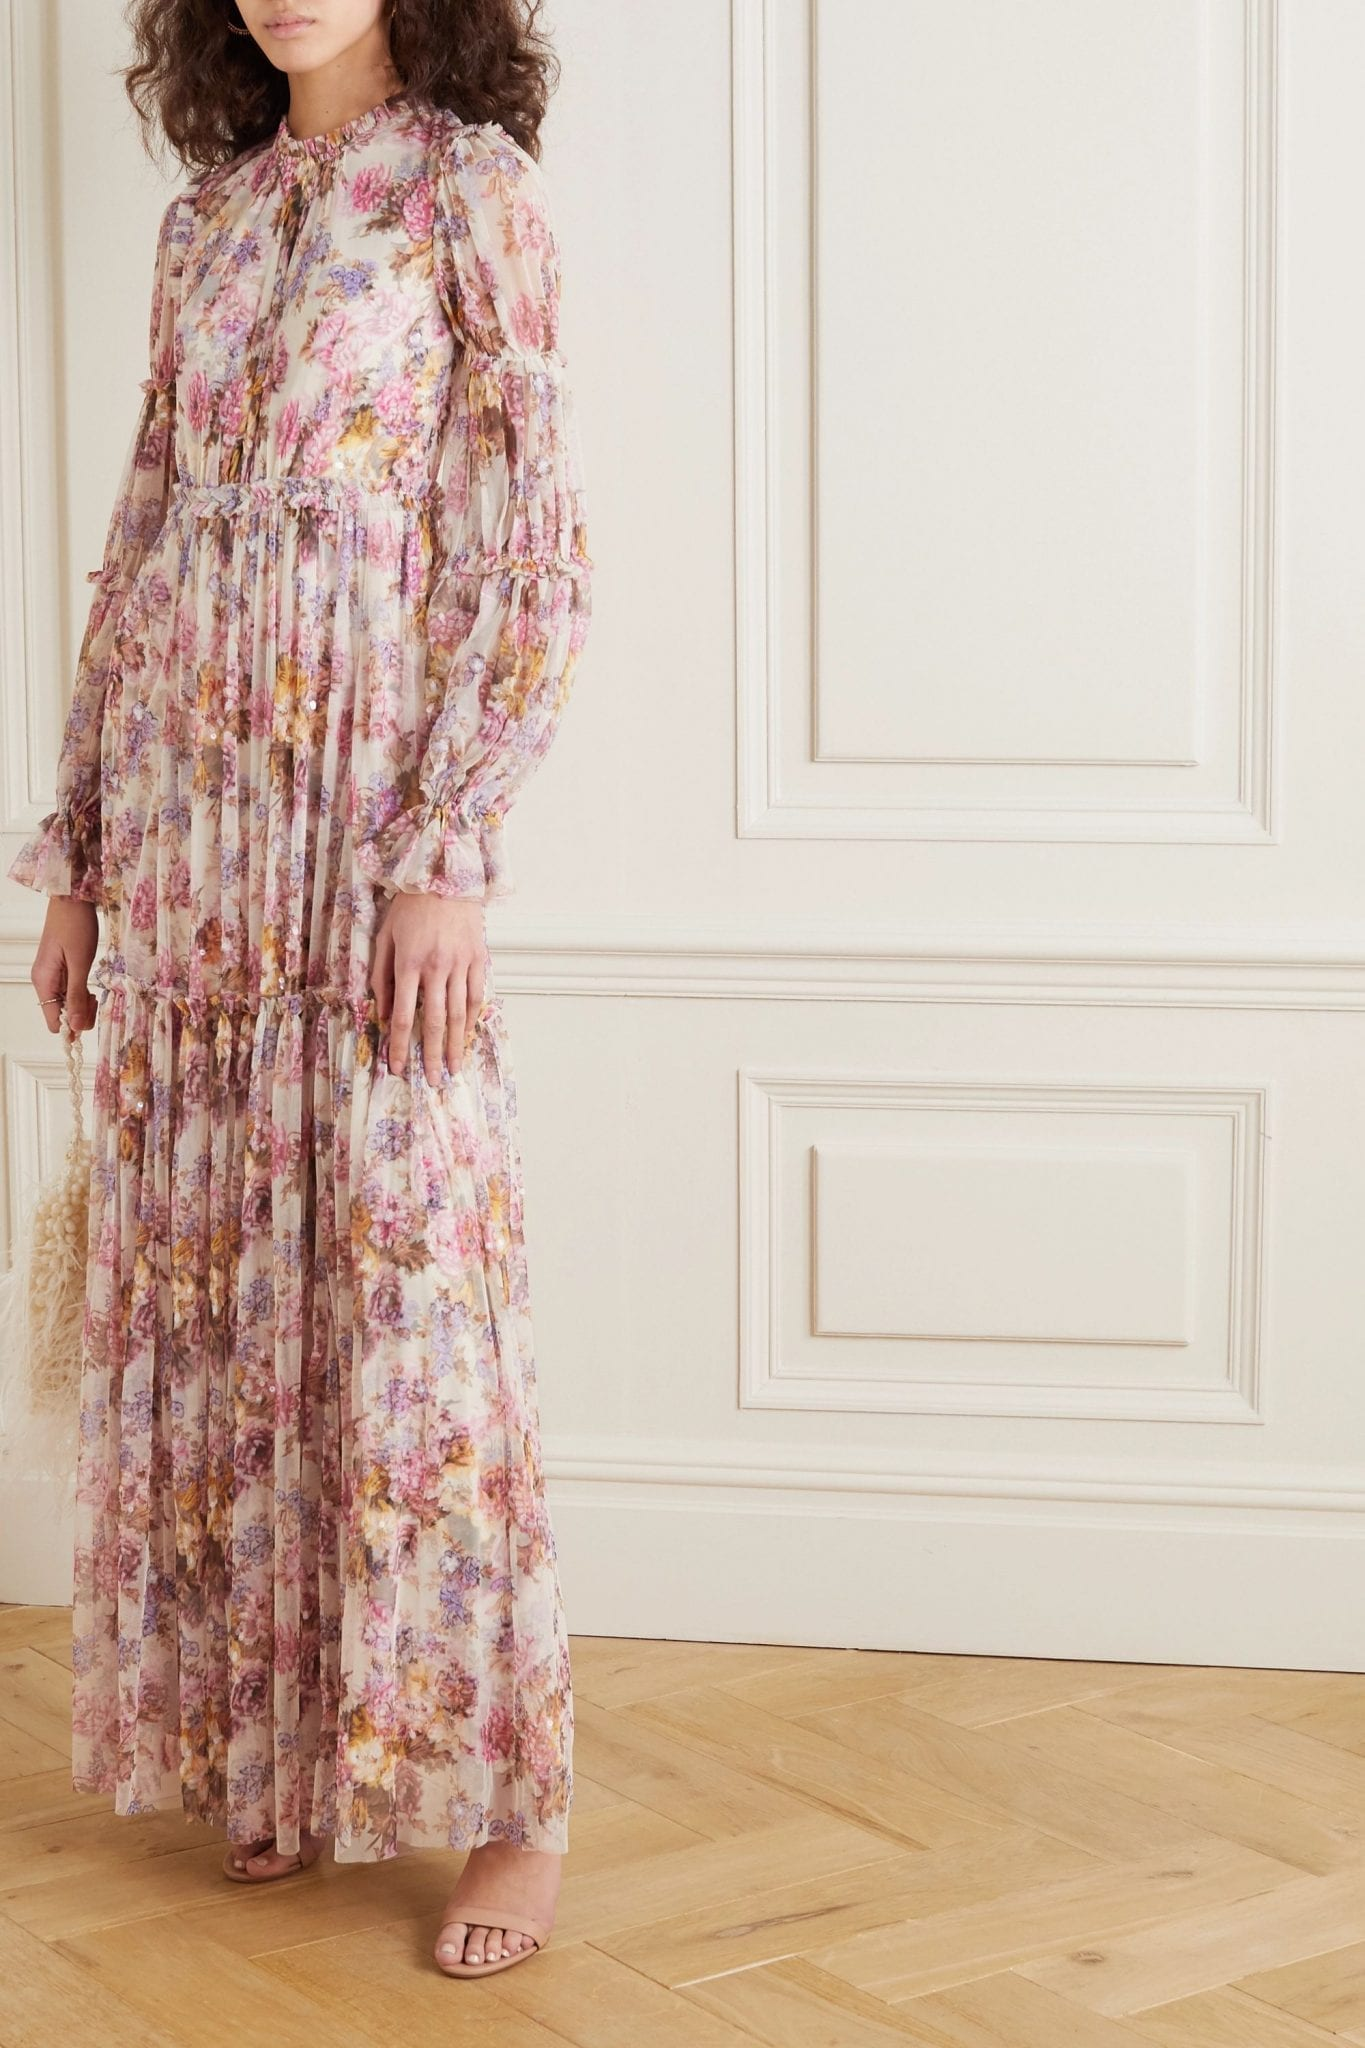 NEEDLE & THREAD + Jasmine Hemsley Harmony Sequin-embellished Floral-print Tulle Gown